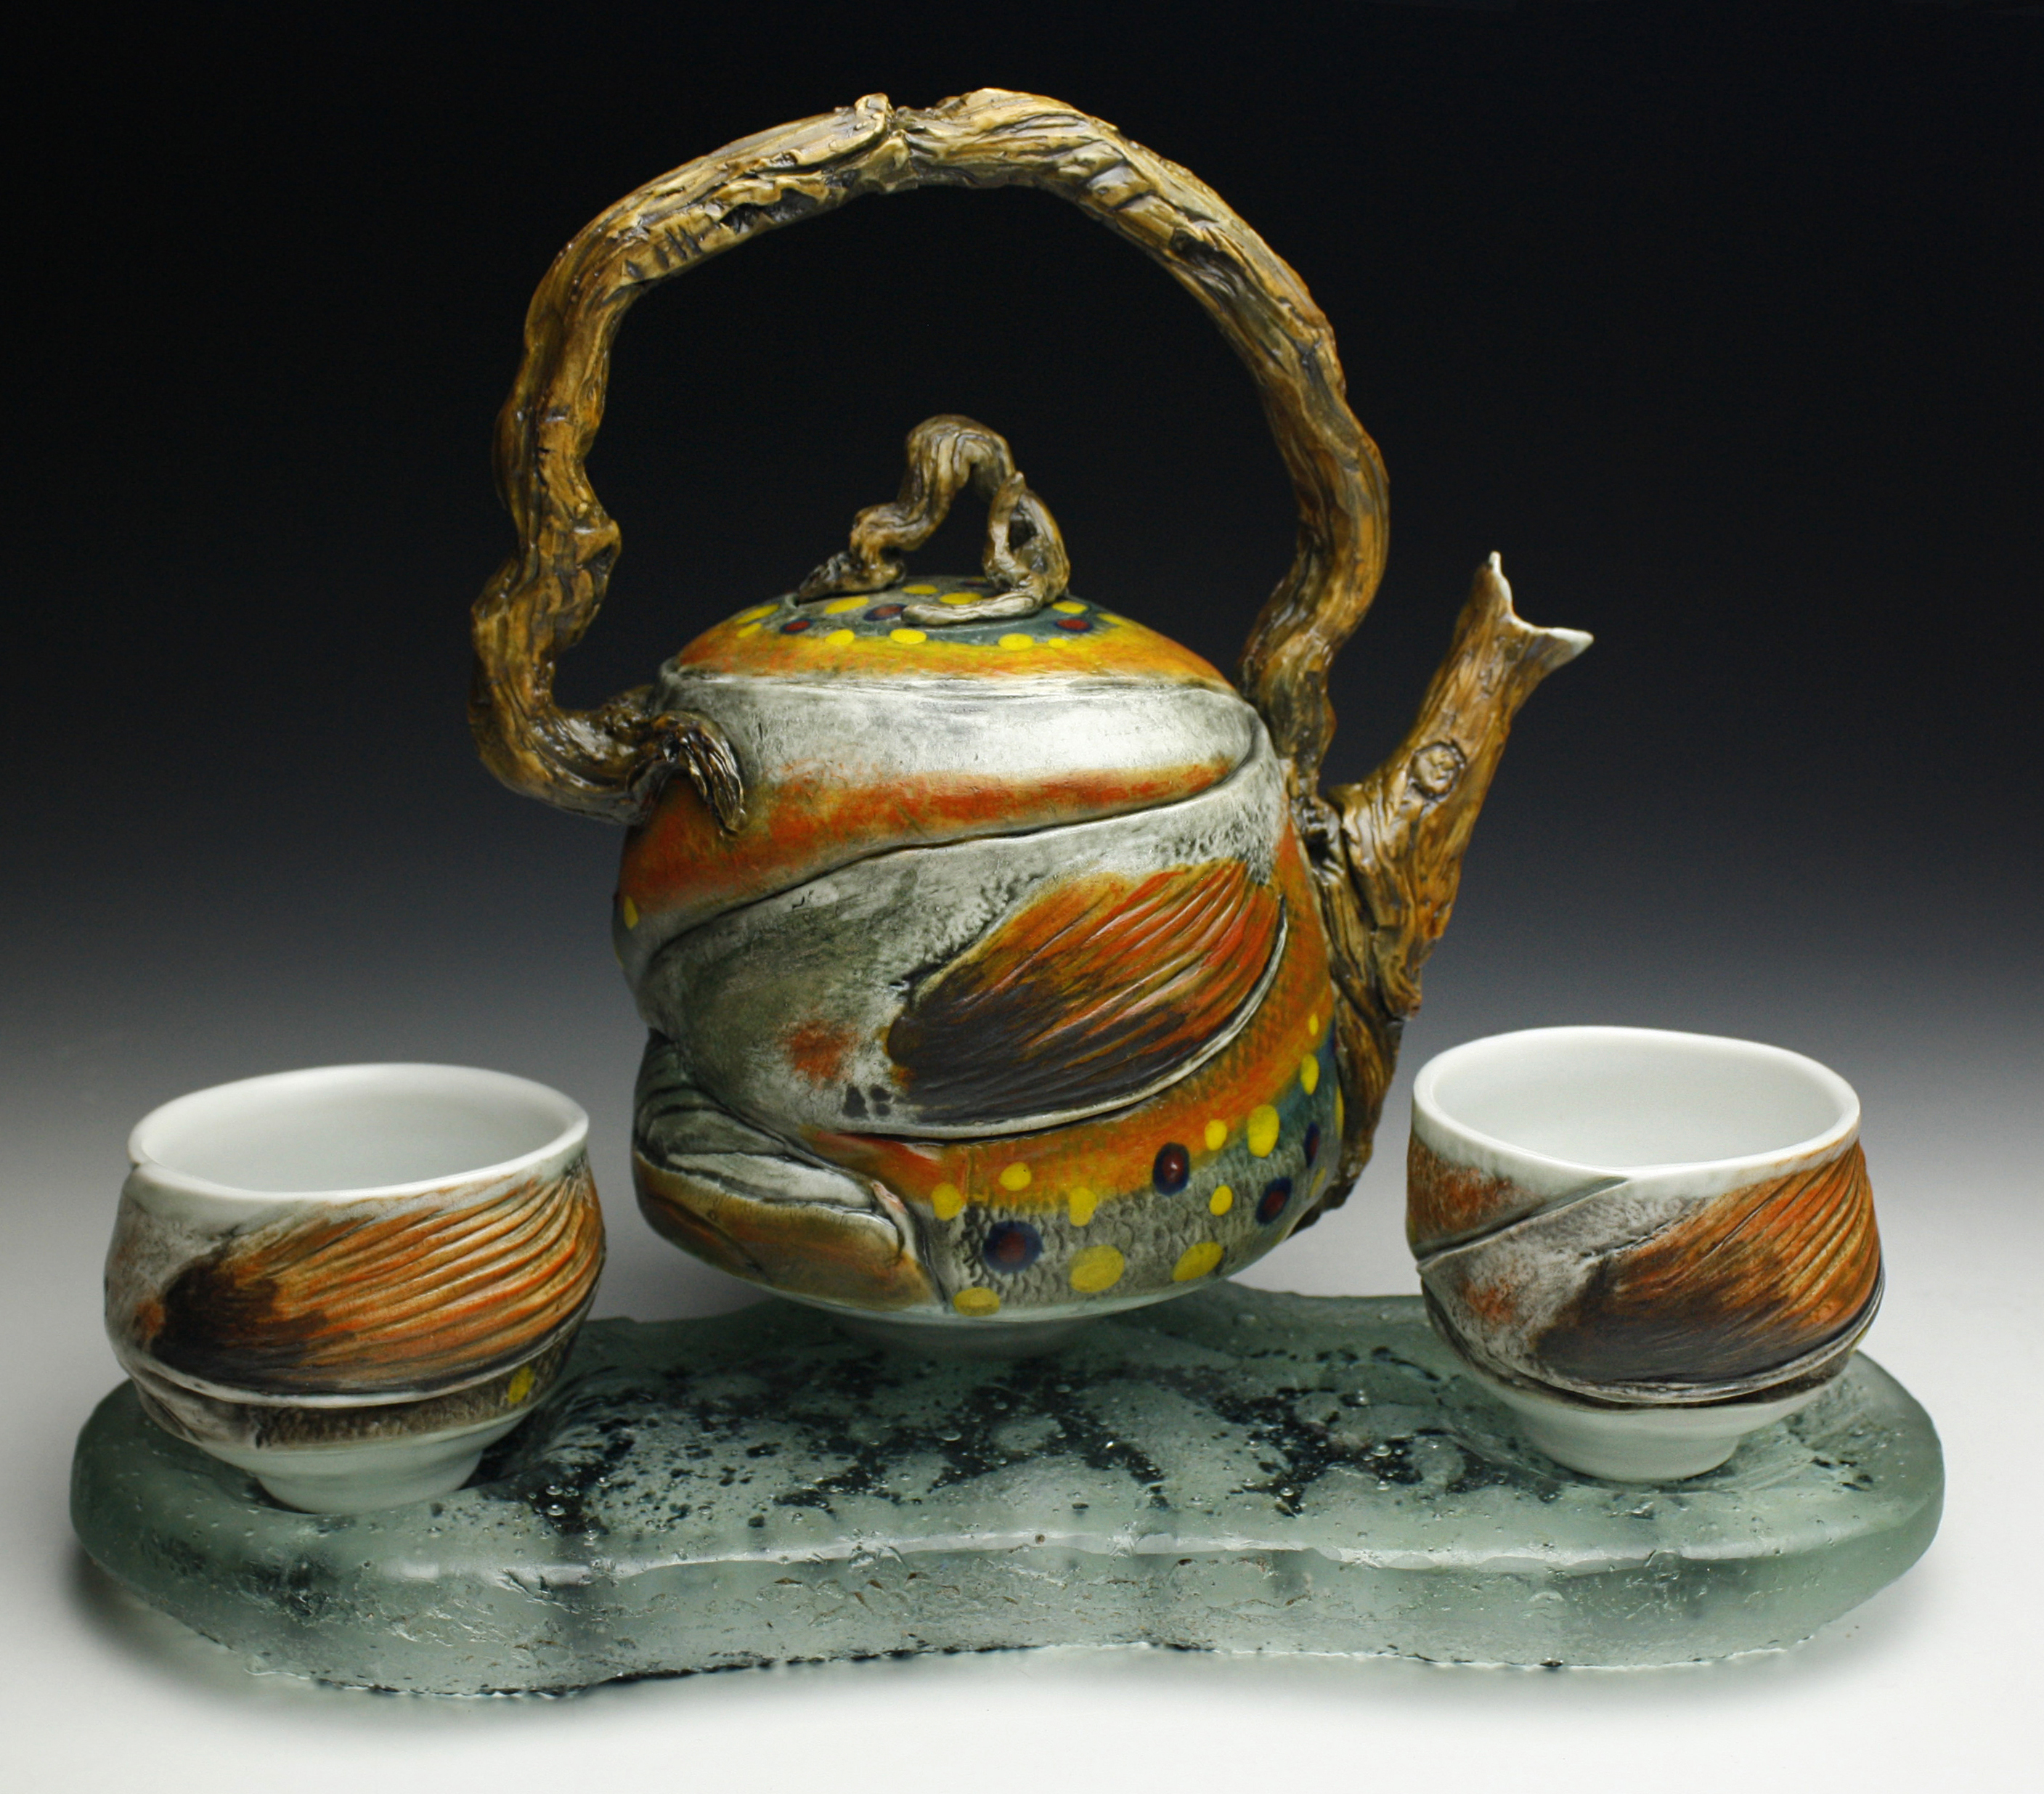 Trout Teapot with River Glass Base